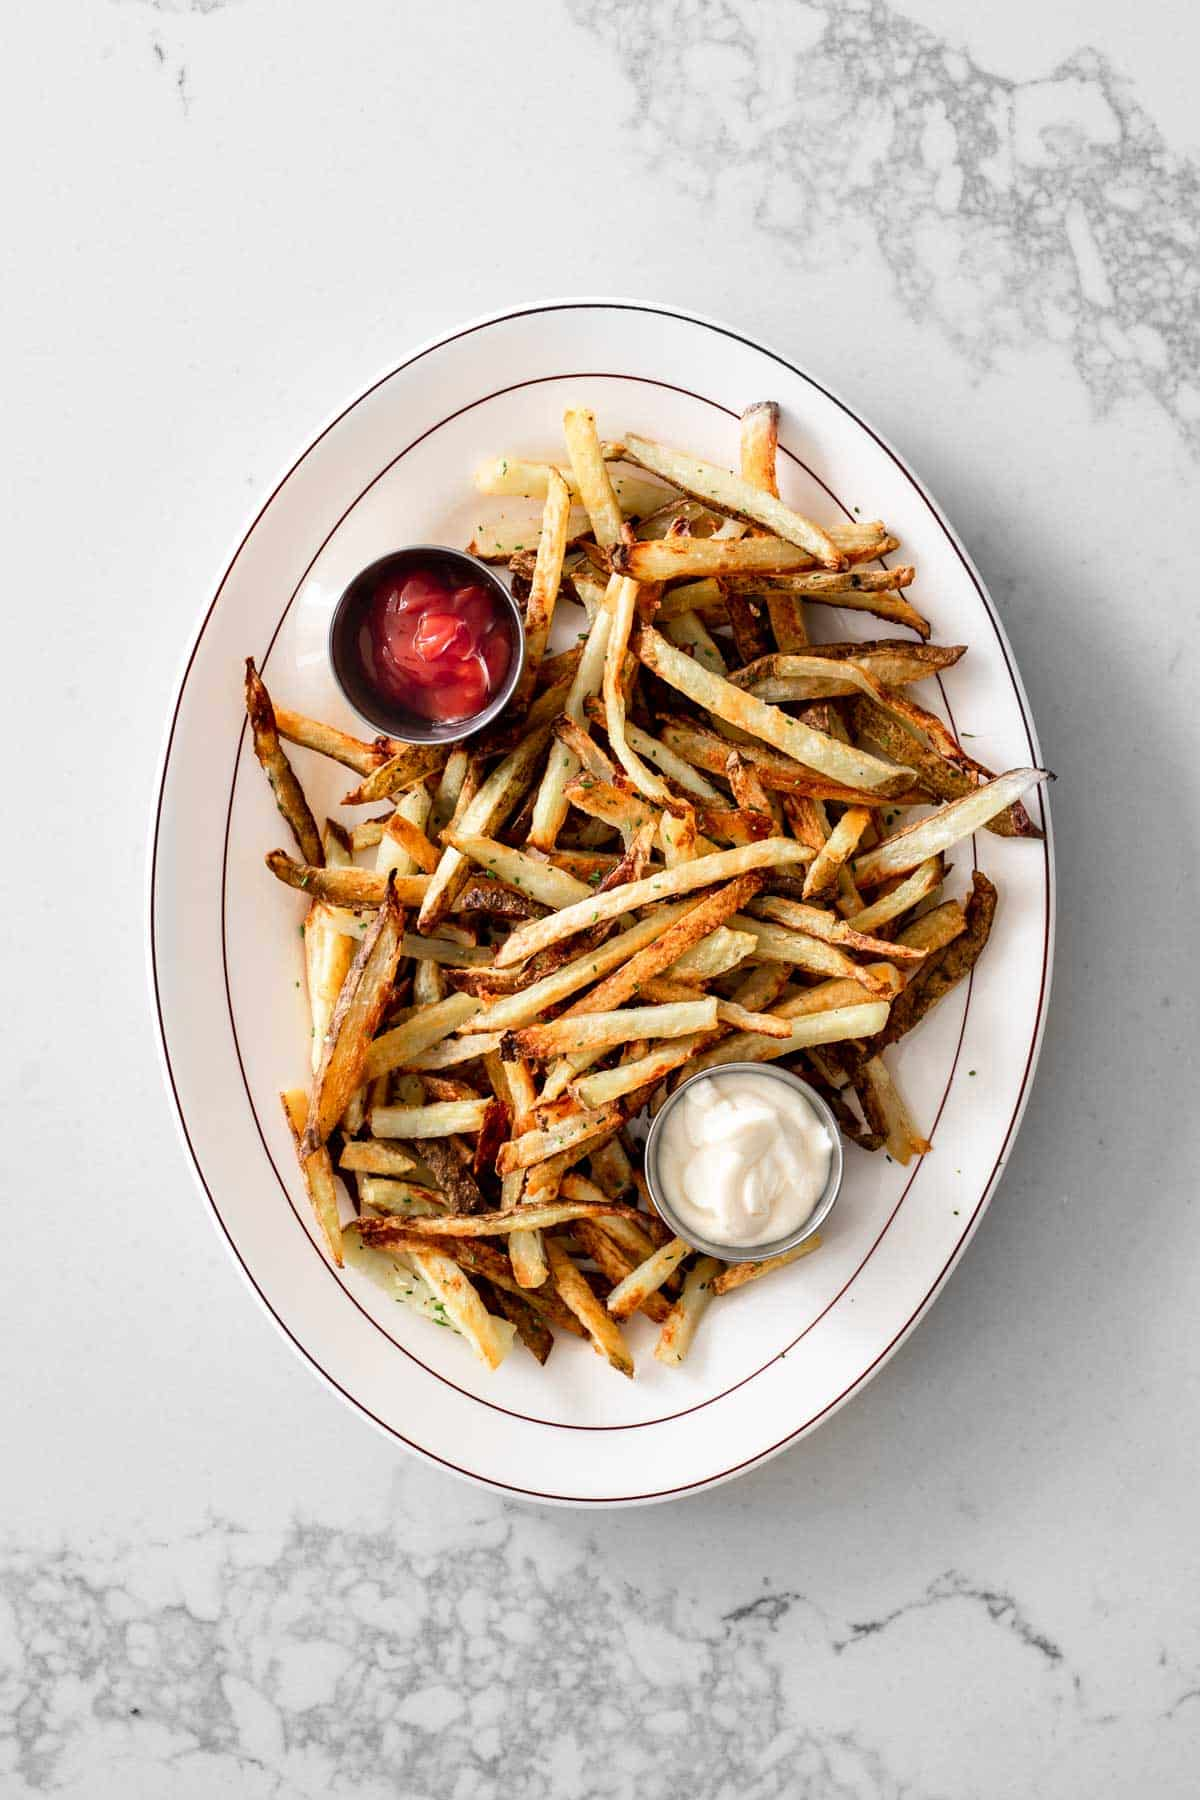 Oven baked french fries on a diner plate with ketchup and mayonnaise